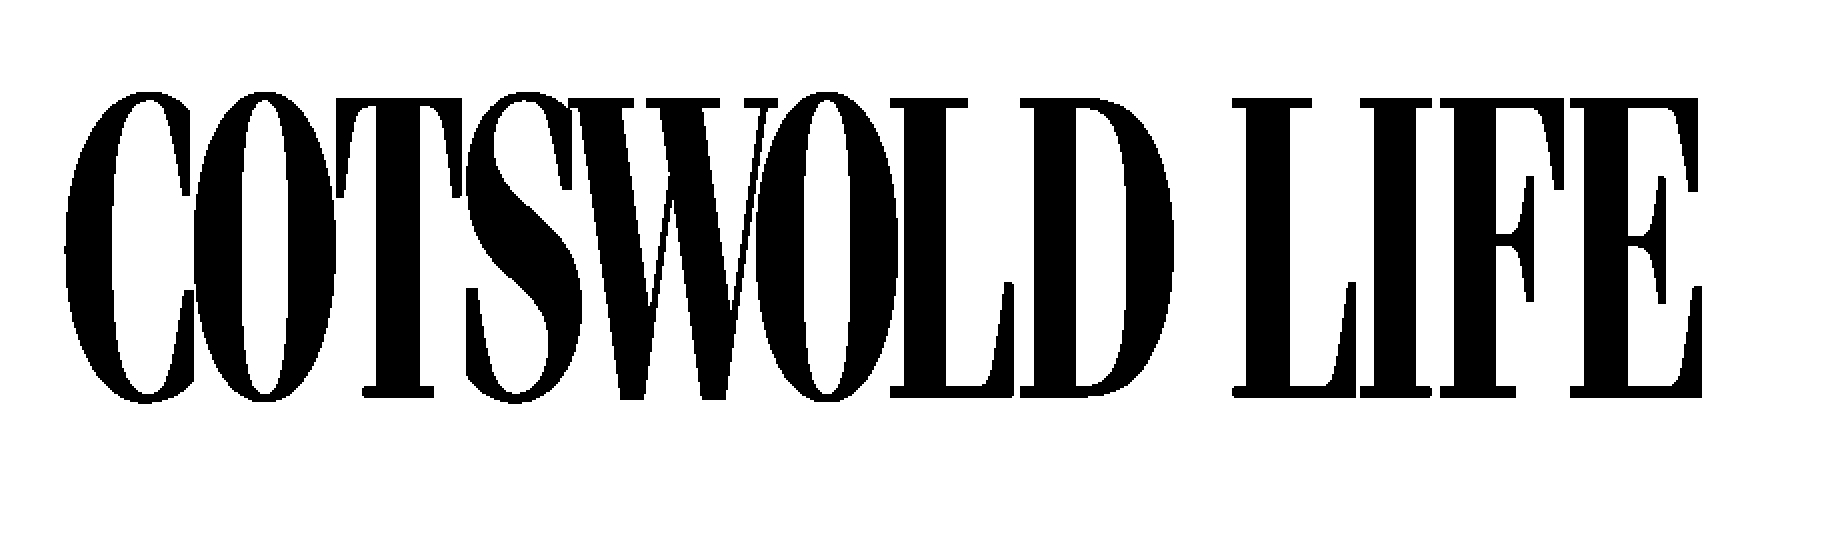 cotswold-life-logo.jpg